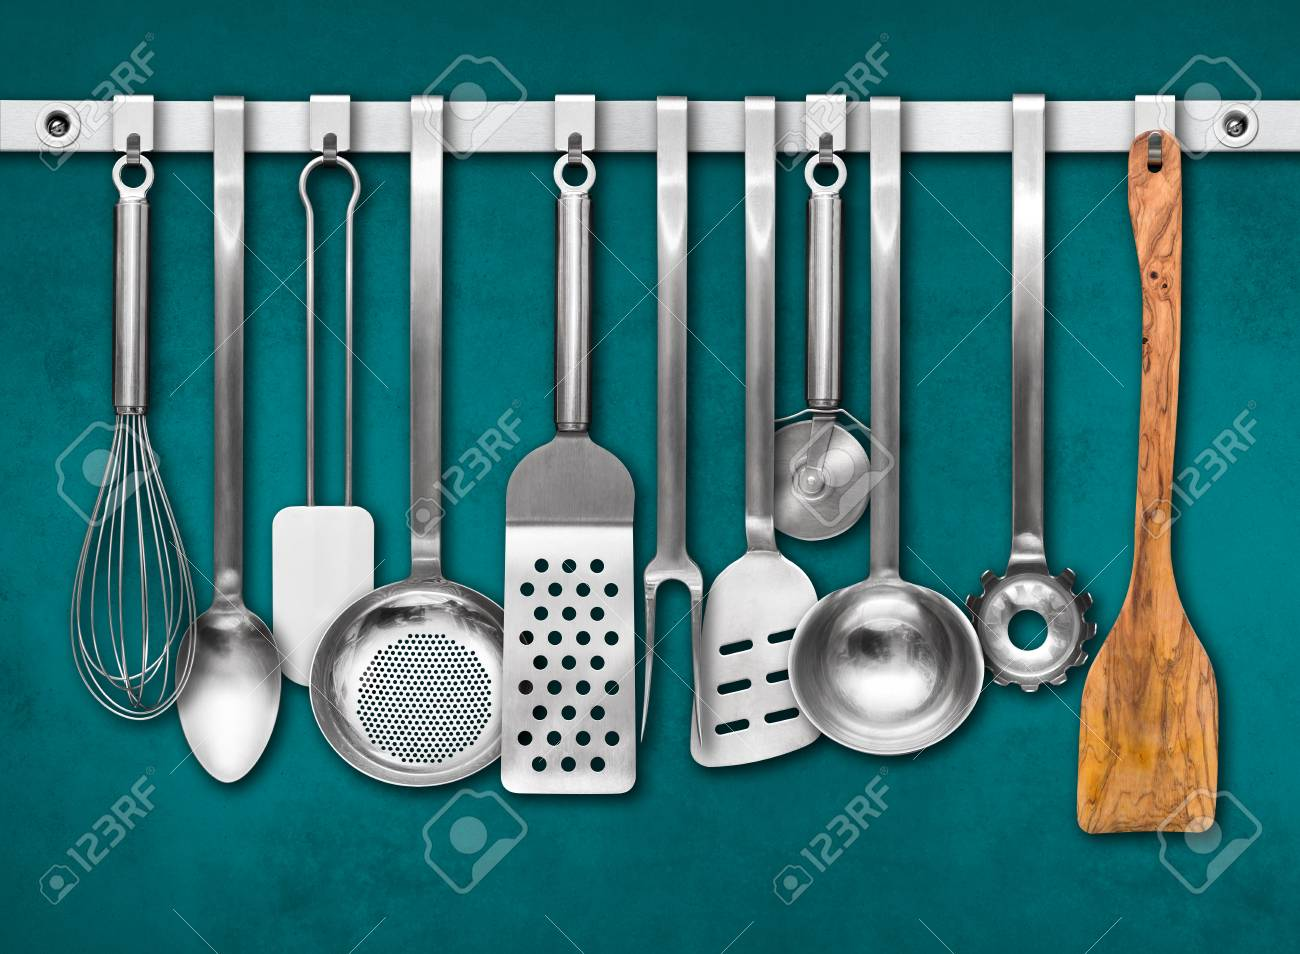 Metal Rail With Kitchen Utensils Hanging In Front Of A Colorful ...